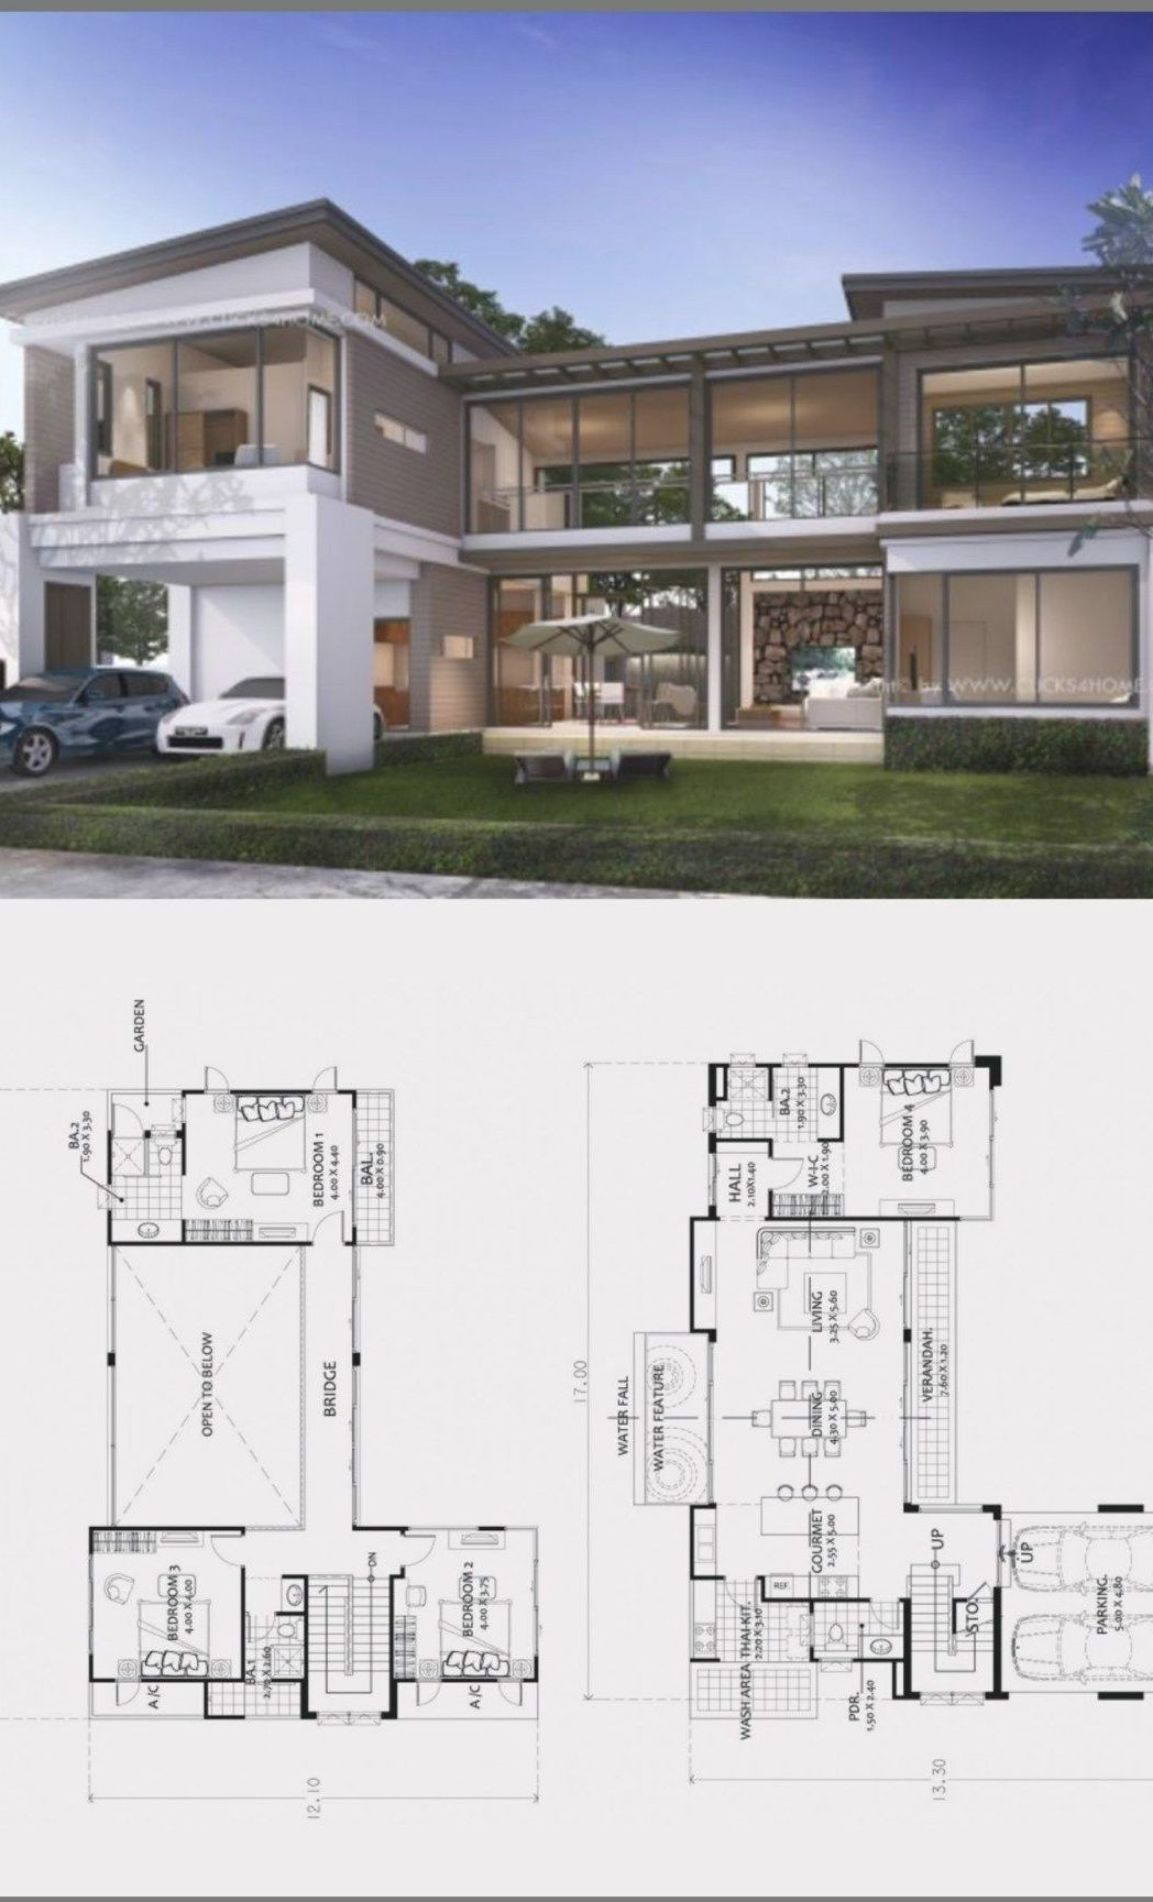 Home Design Plan 17x13m With 4 Bedrooms Home Design With Plansearch House Layouts Beautiful House Plans Contemporary House Plans